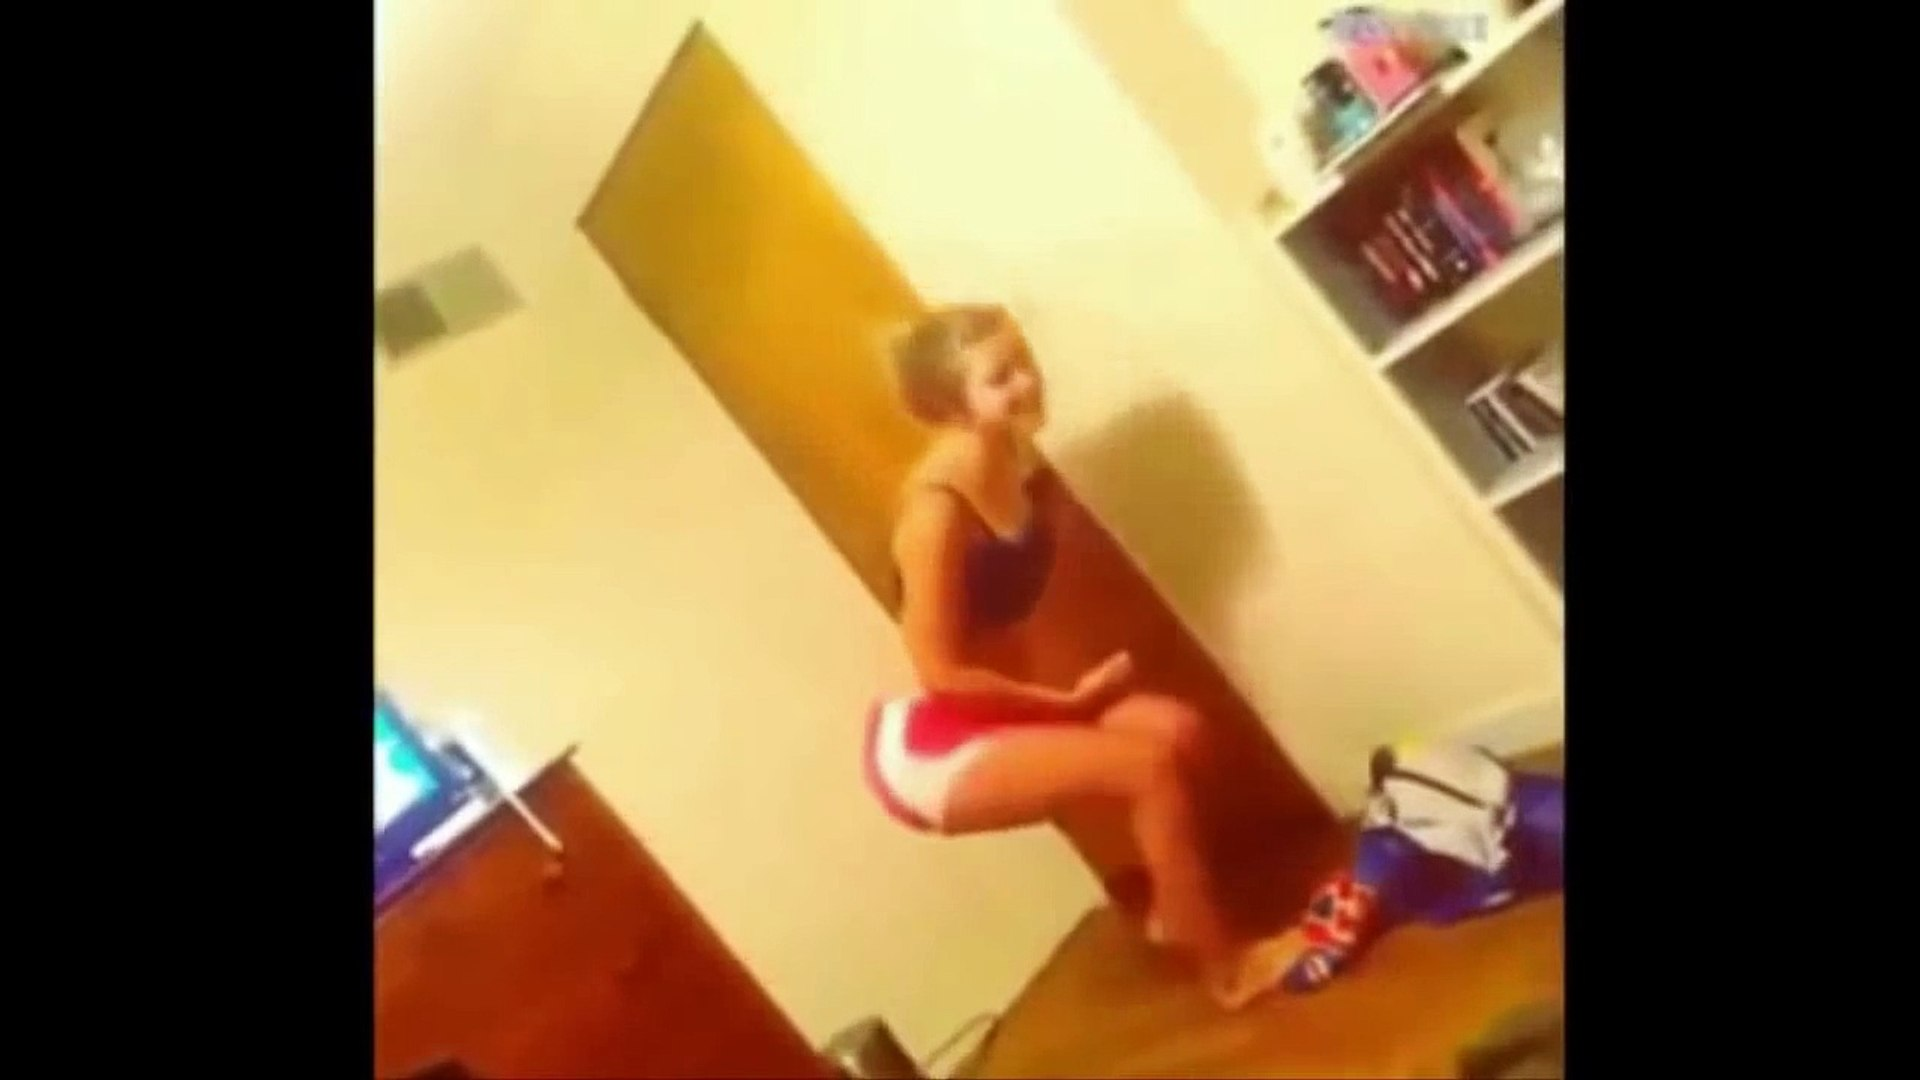 Funniest Drunk People Try Not To Laugh Aug 2016 poo bee - Best Pranks World 2016 - funny 2016 Part 3